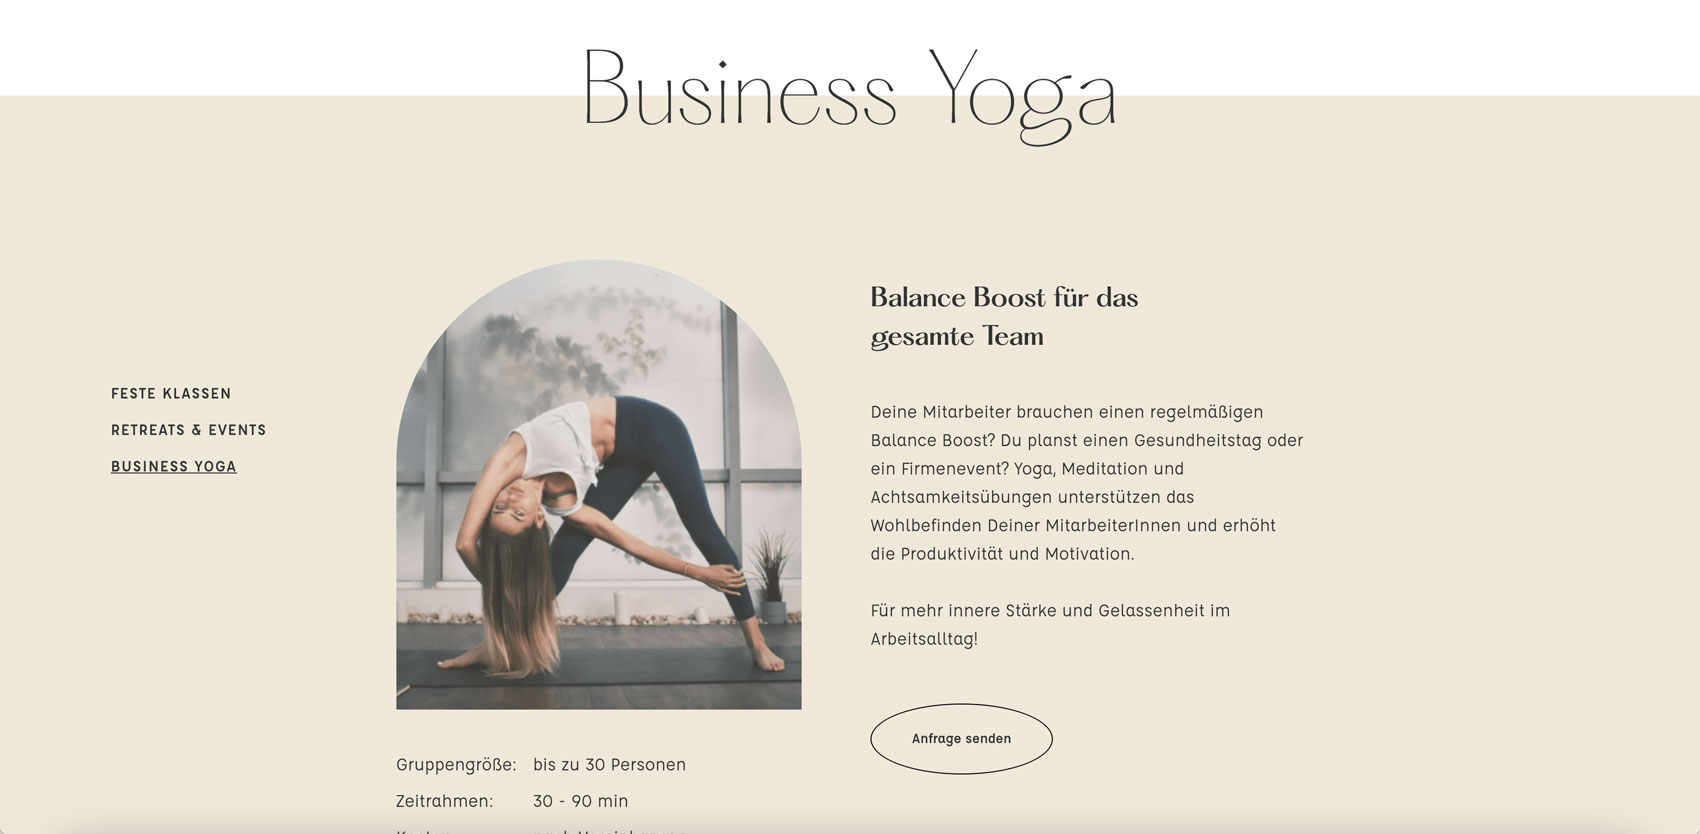 Website design by Alexandra Linortner for the lifestyle coach Miriam Zech and her brand Stay Balanced